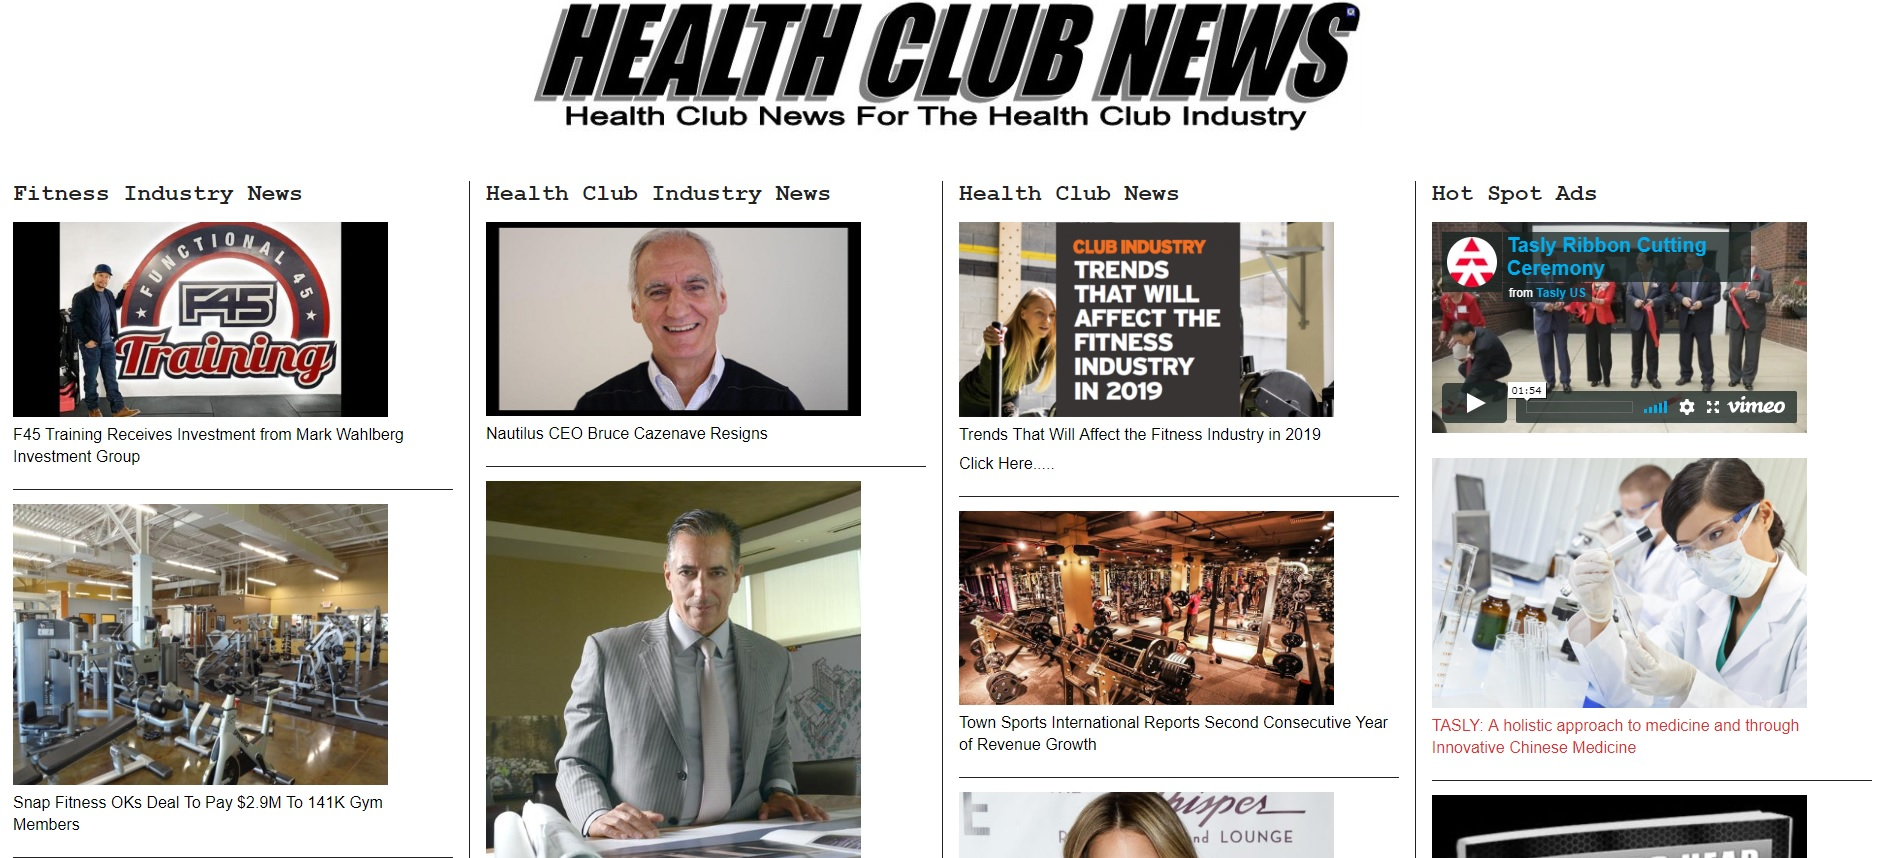 Advertise your Affiliate Marketing product on Health Club News